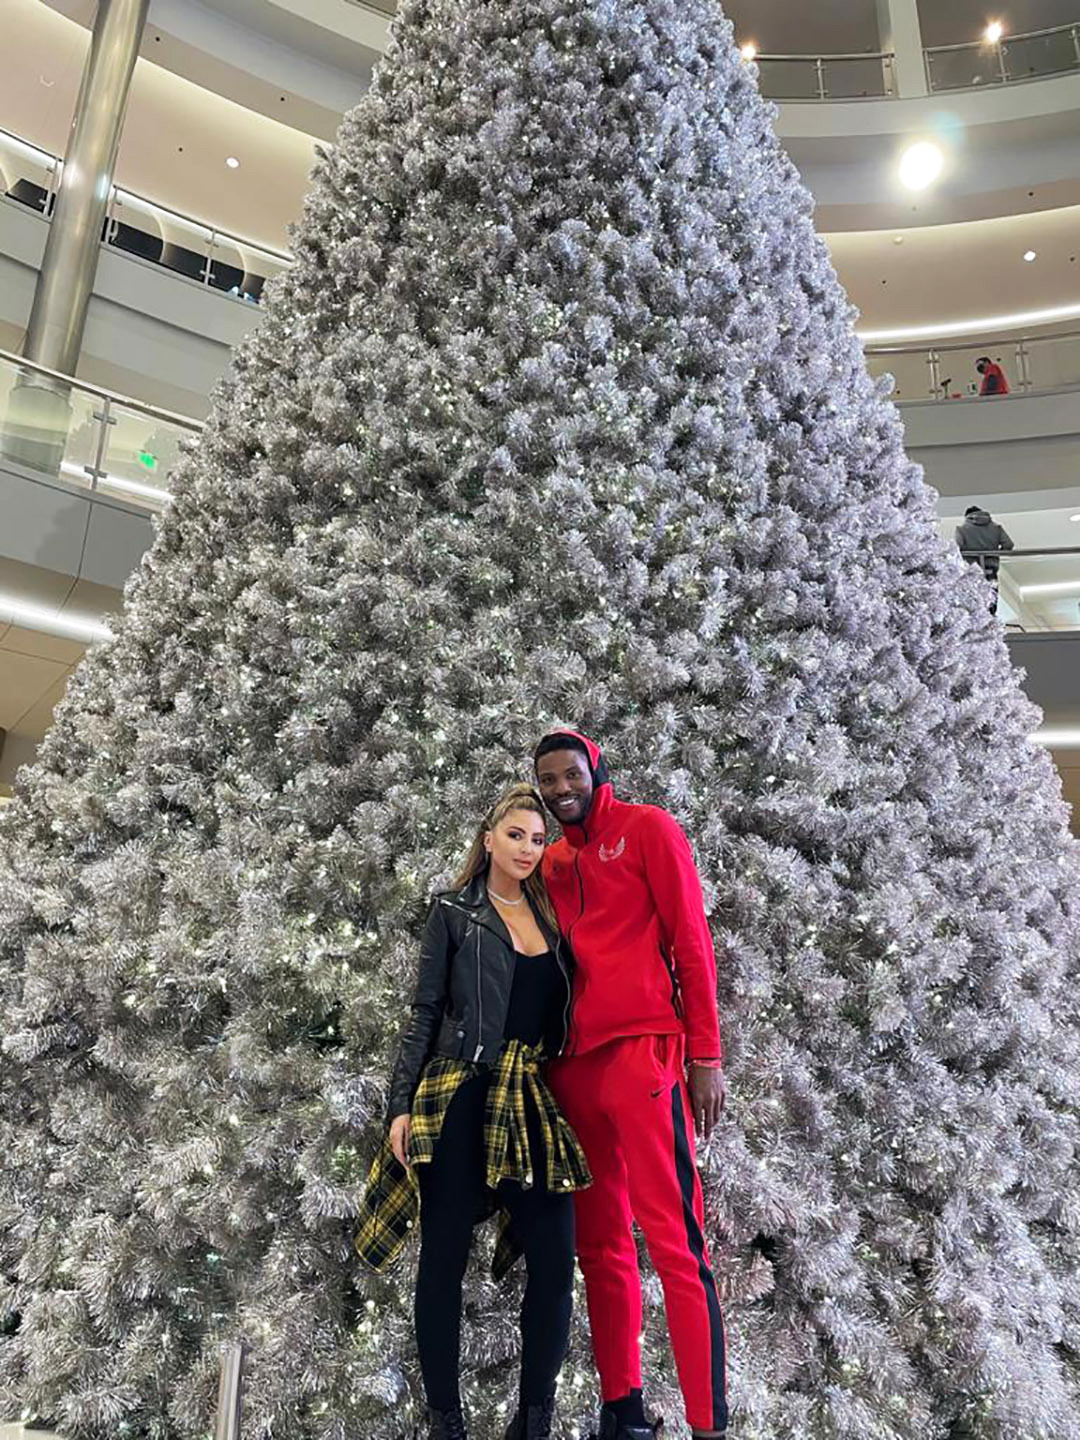 Larsa Pippen and Malik Beasley Cozy Up in Front of Christmas Tree During Holiday Visit to His Hometown